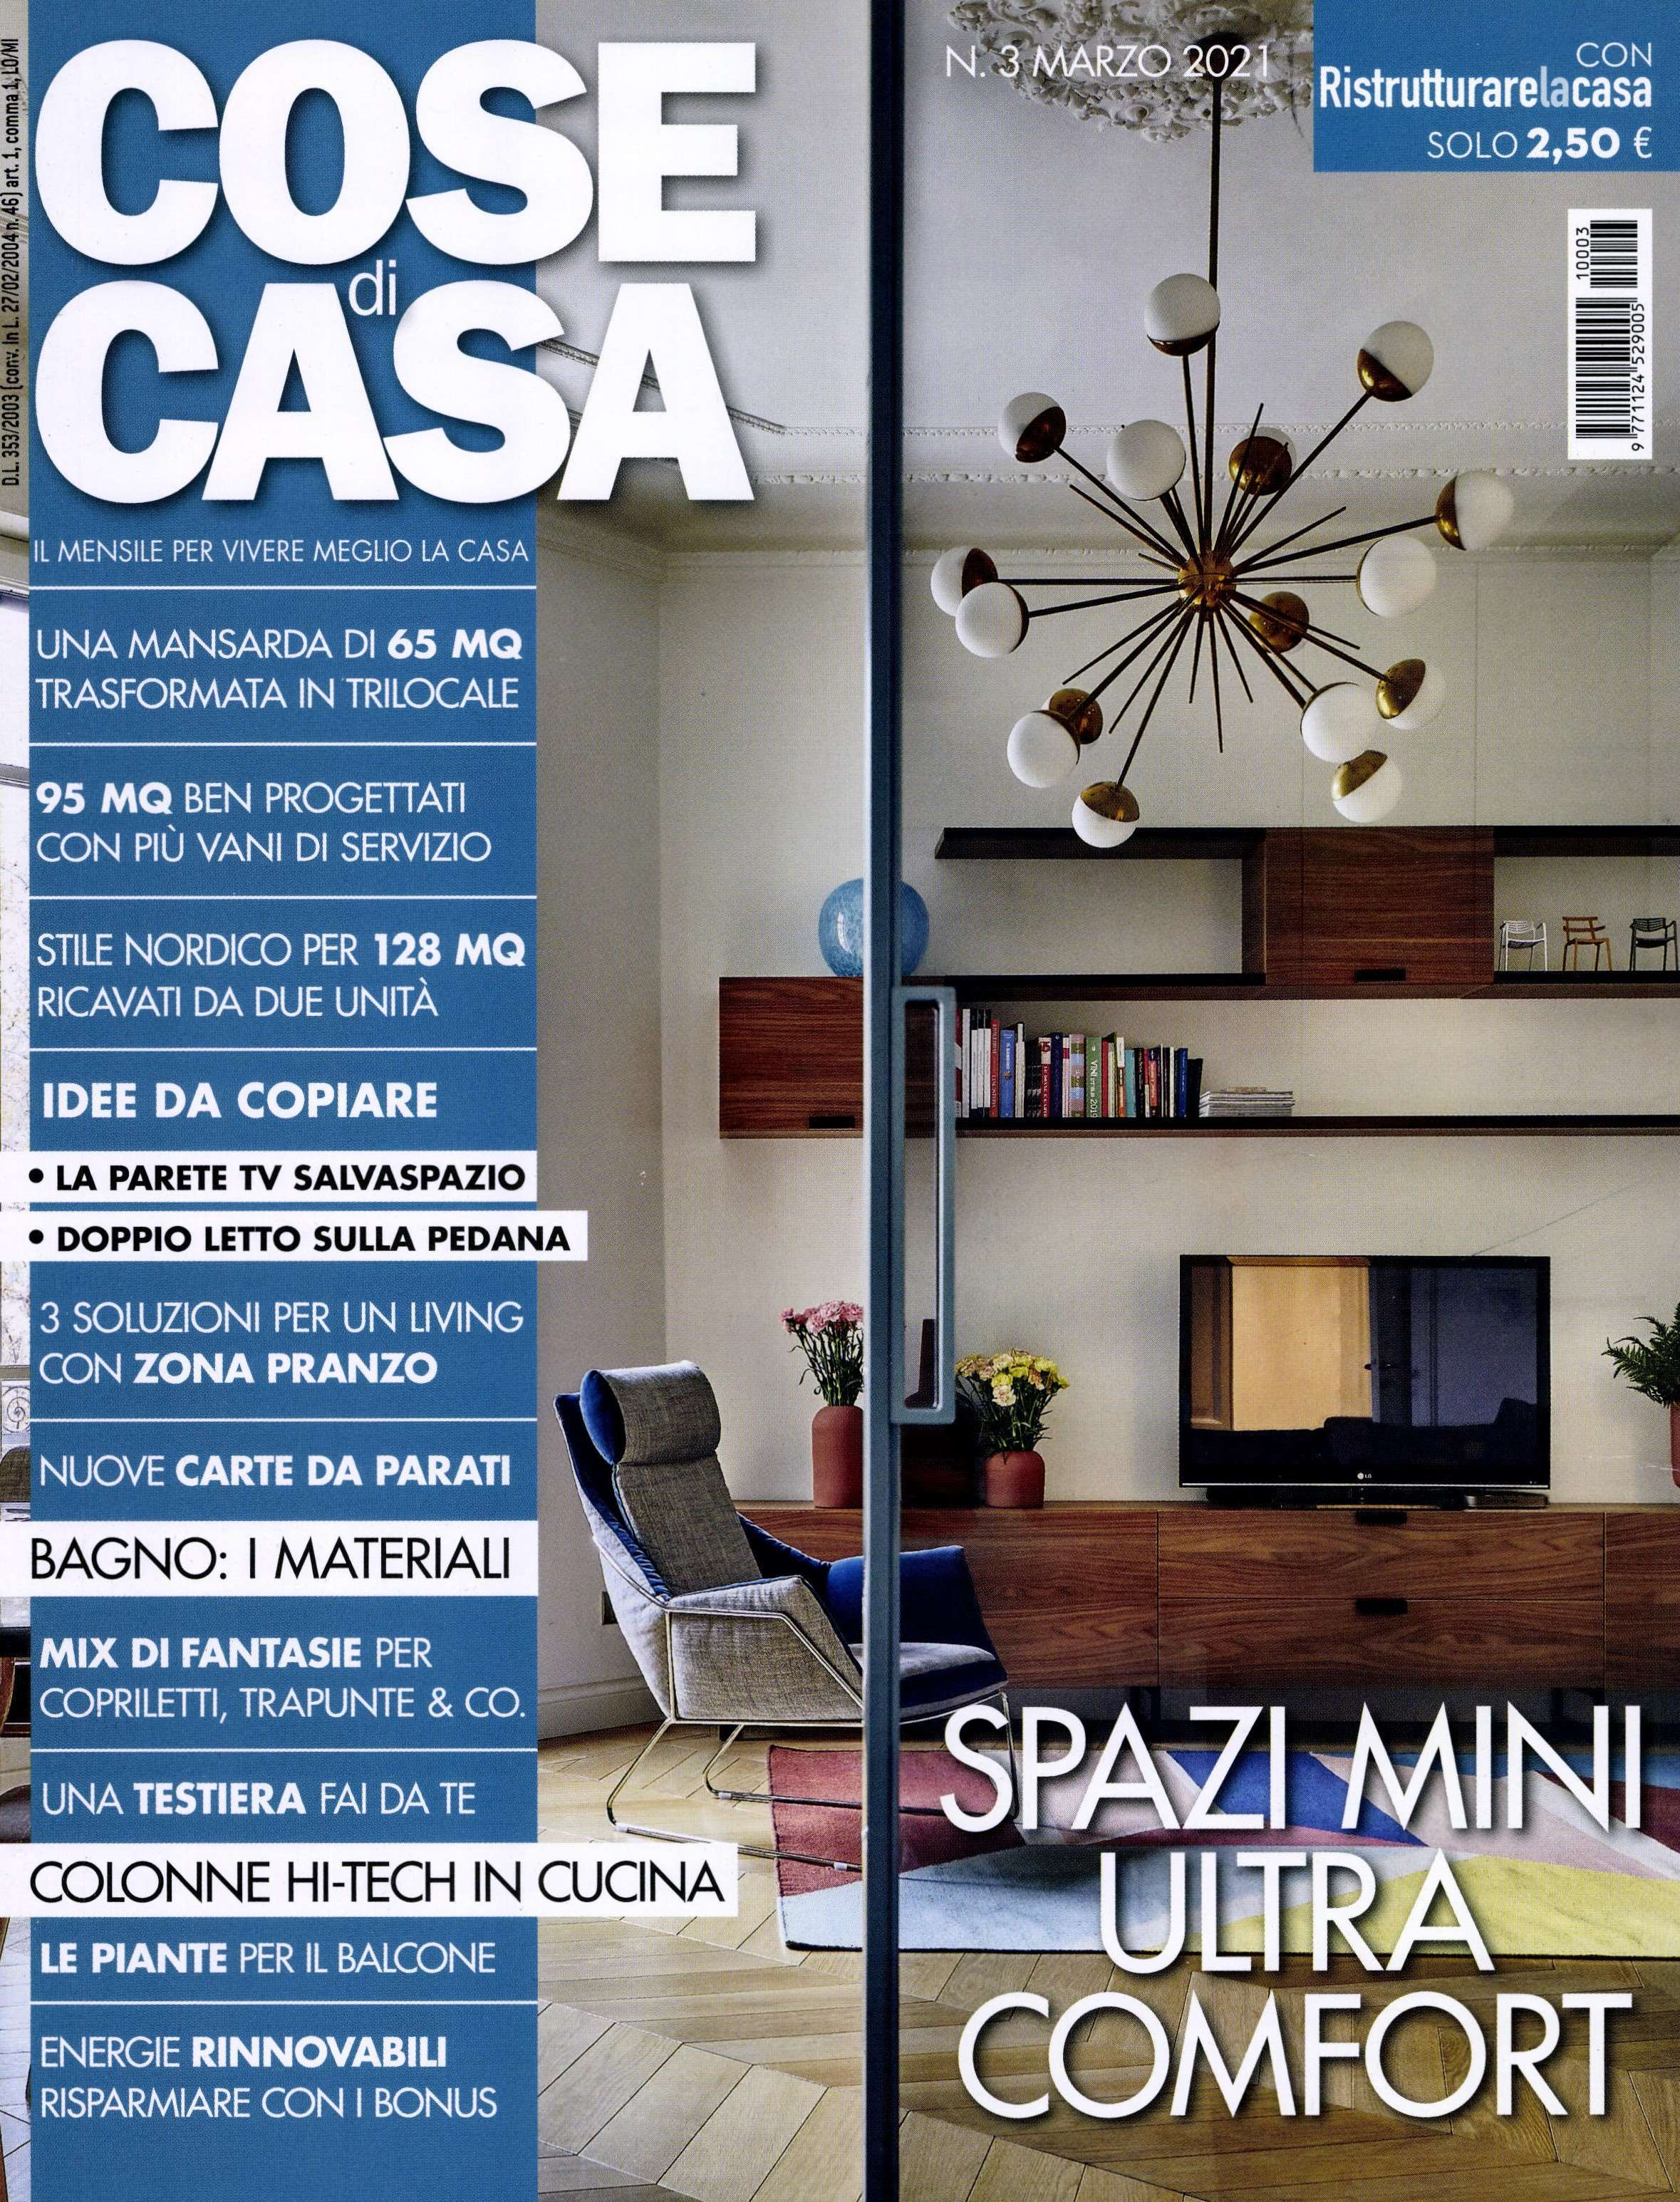 2021.03.01 – Cose di Casa IT – cover